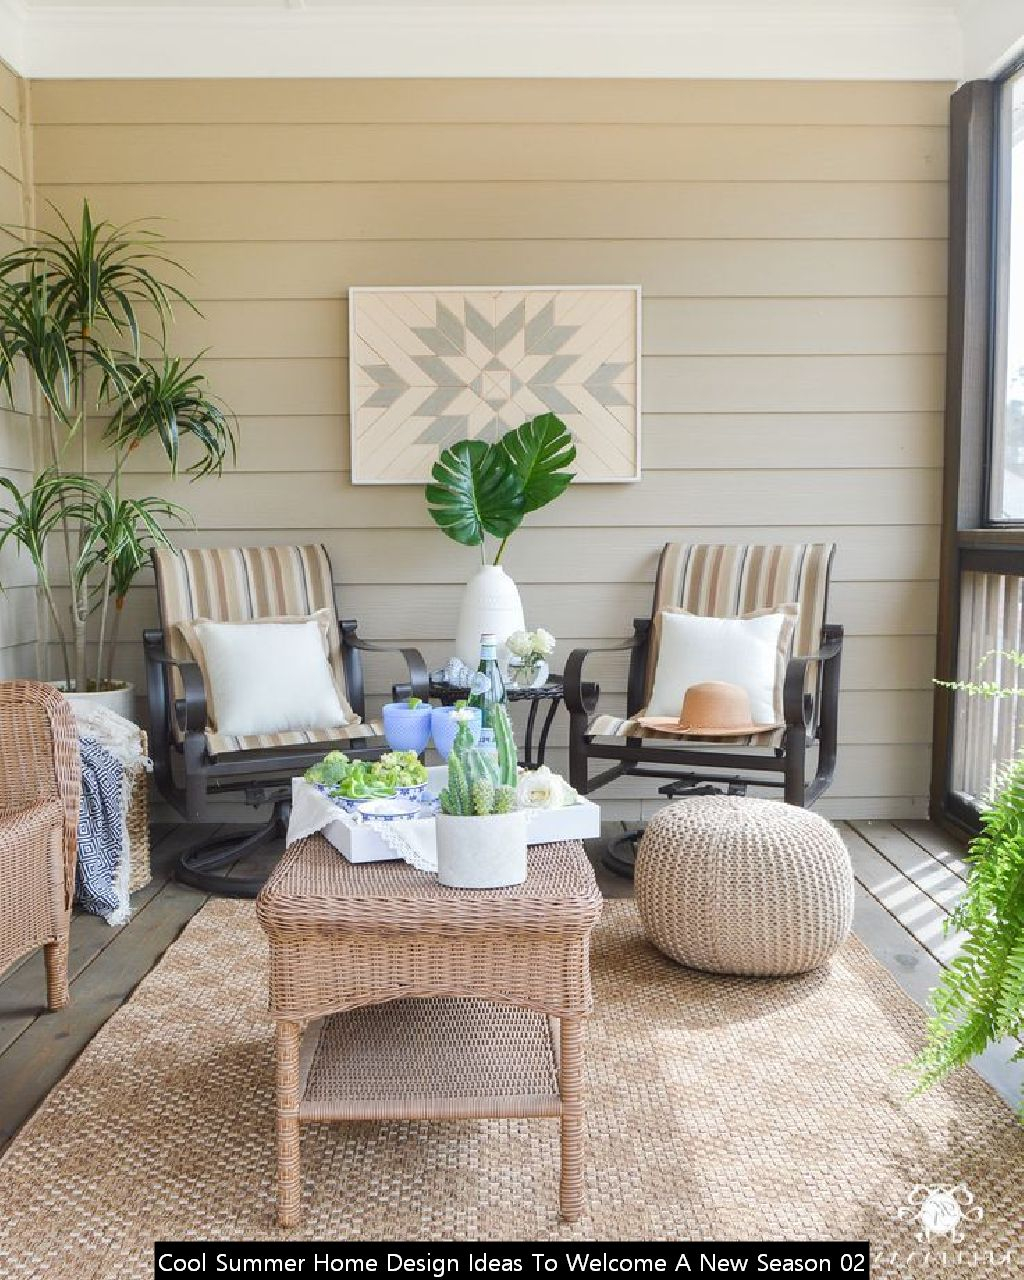 Cool Summer Home Design Ideas To Welcome A New Season 02